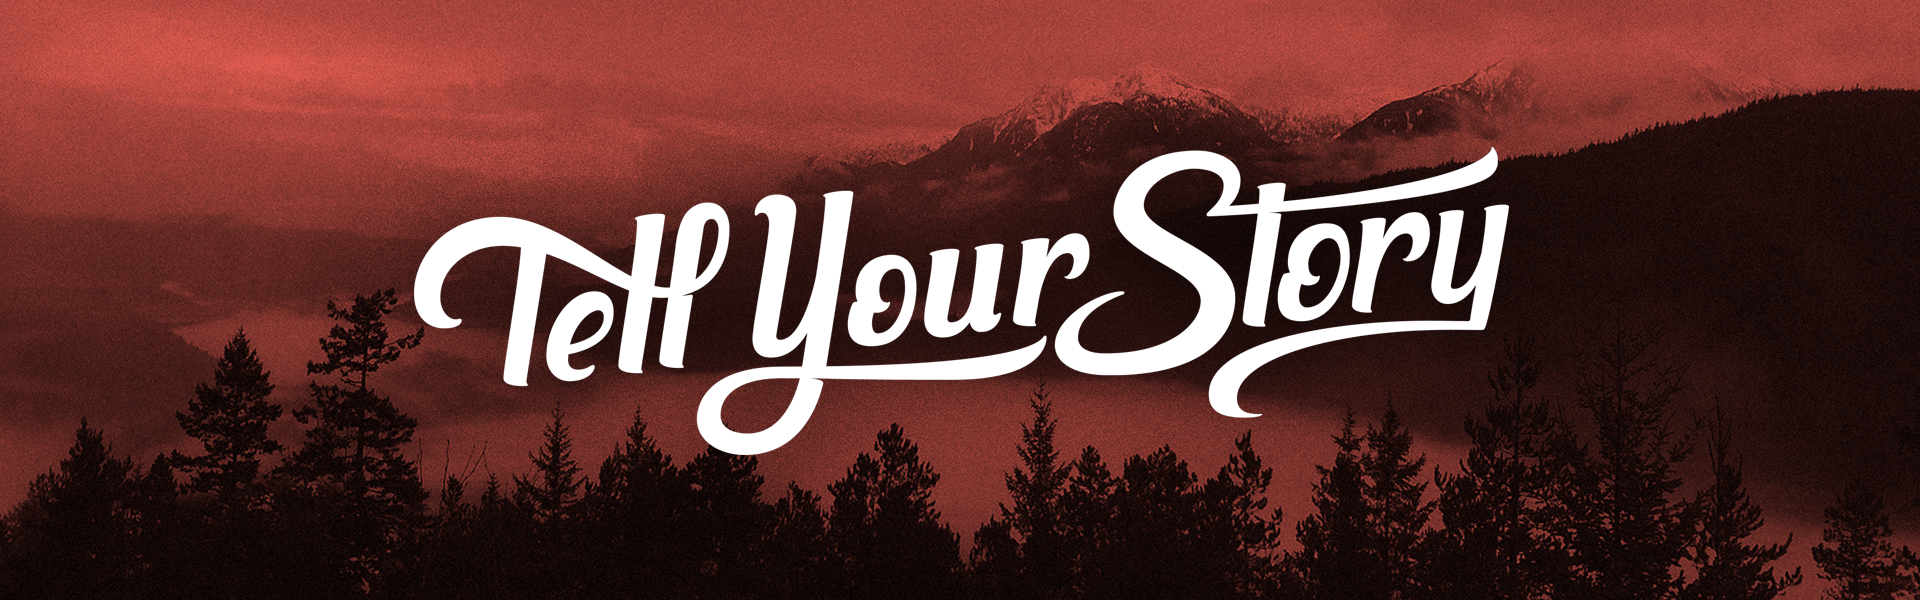 Tell Your Story Campsite Mobile Header